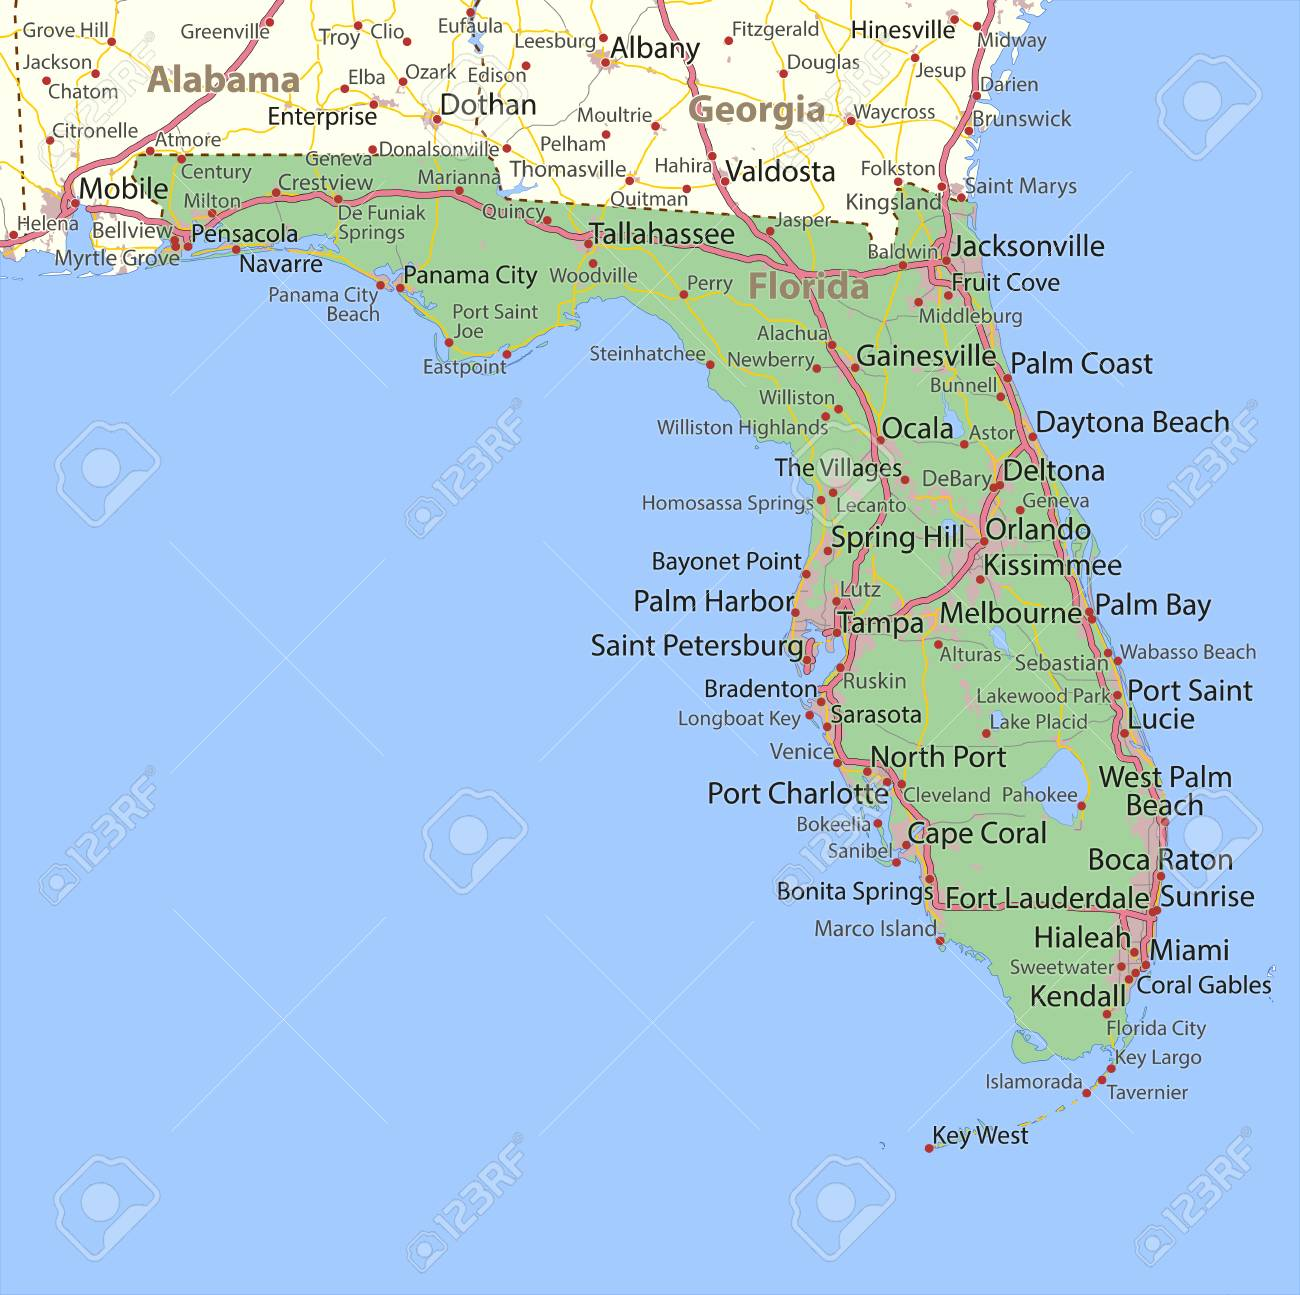 Florida Map State.Map Of Florida Shows State Borders Urban Areas Place Names